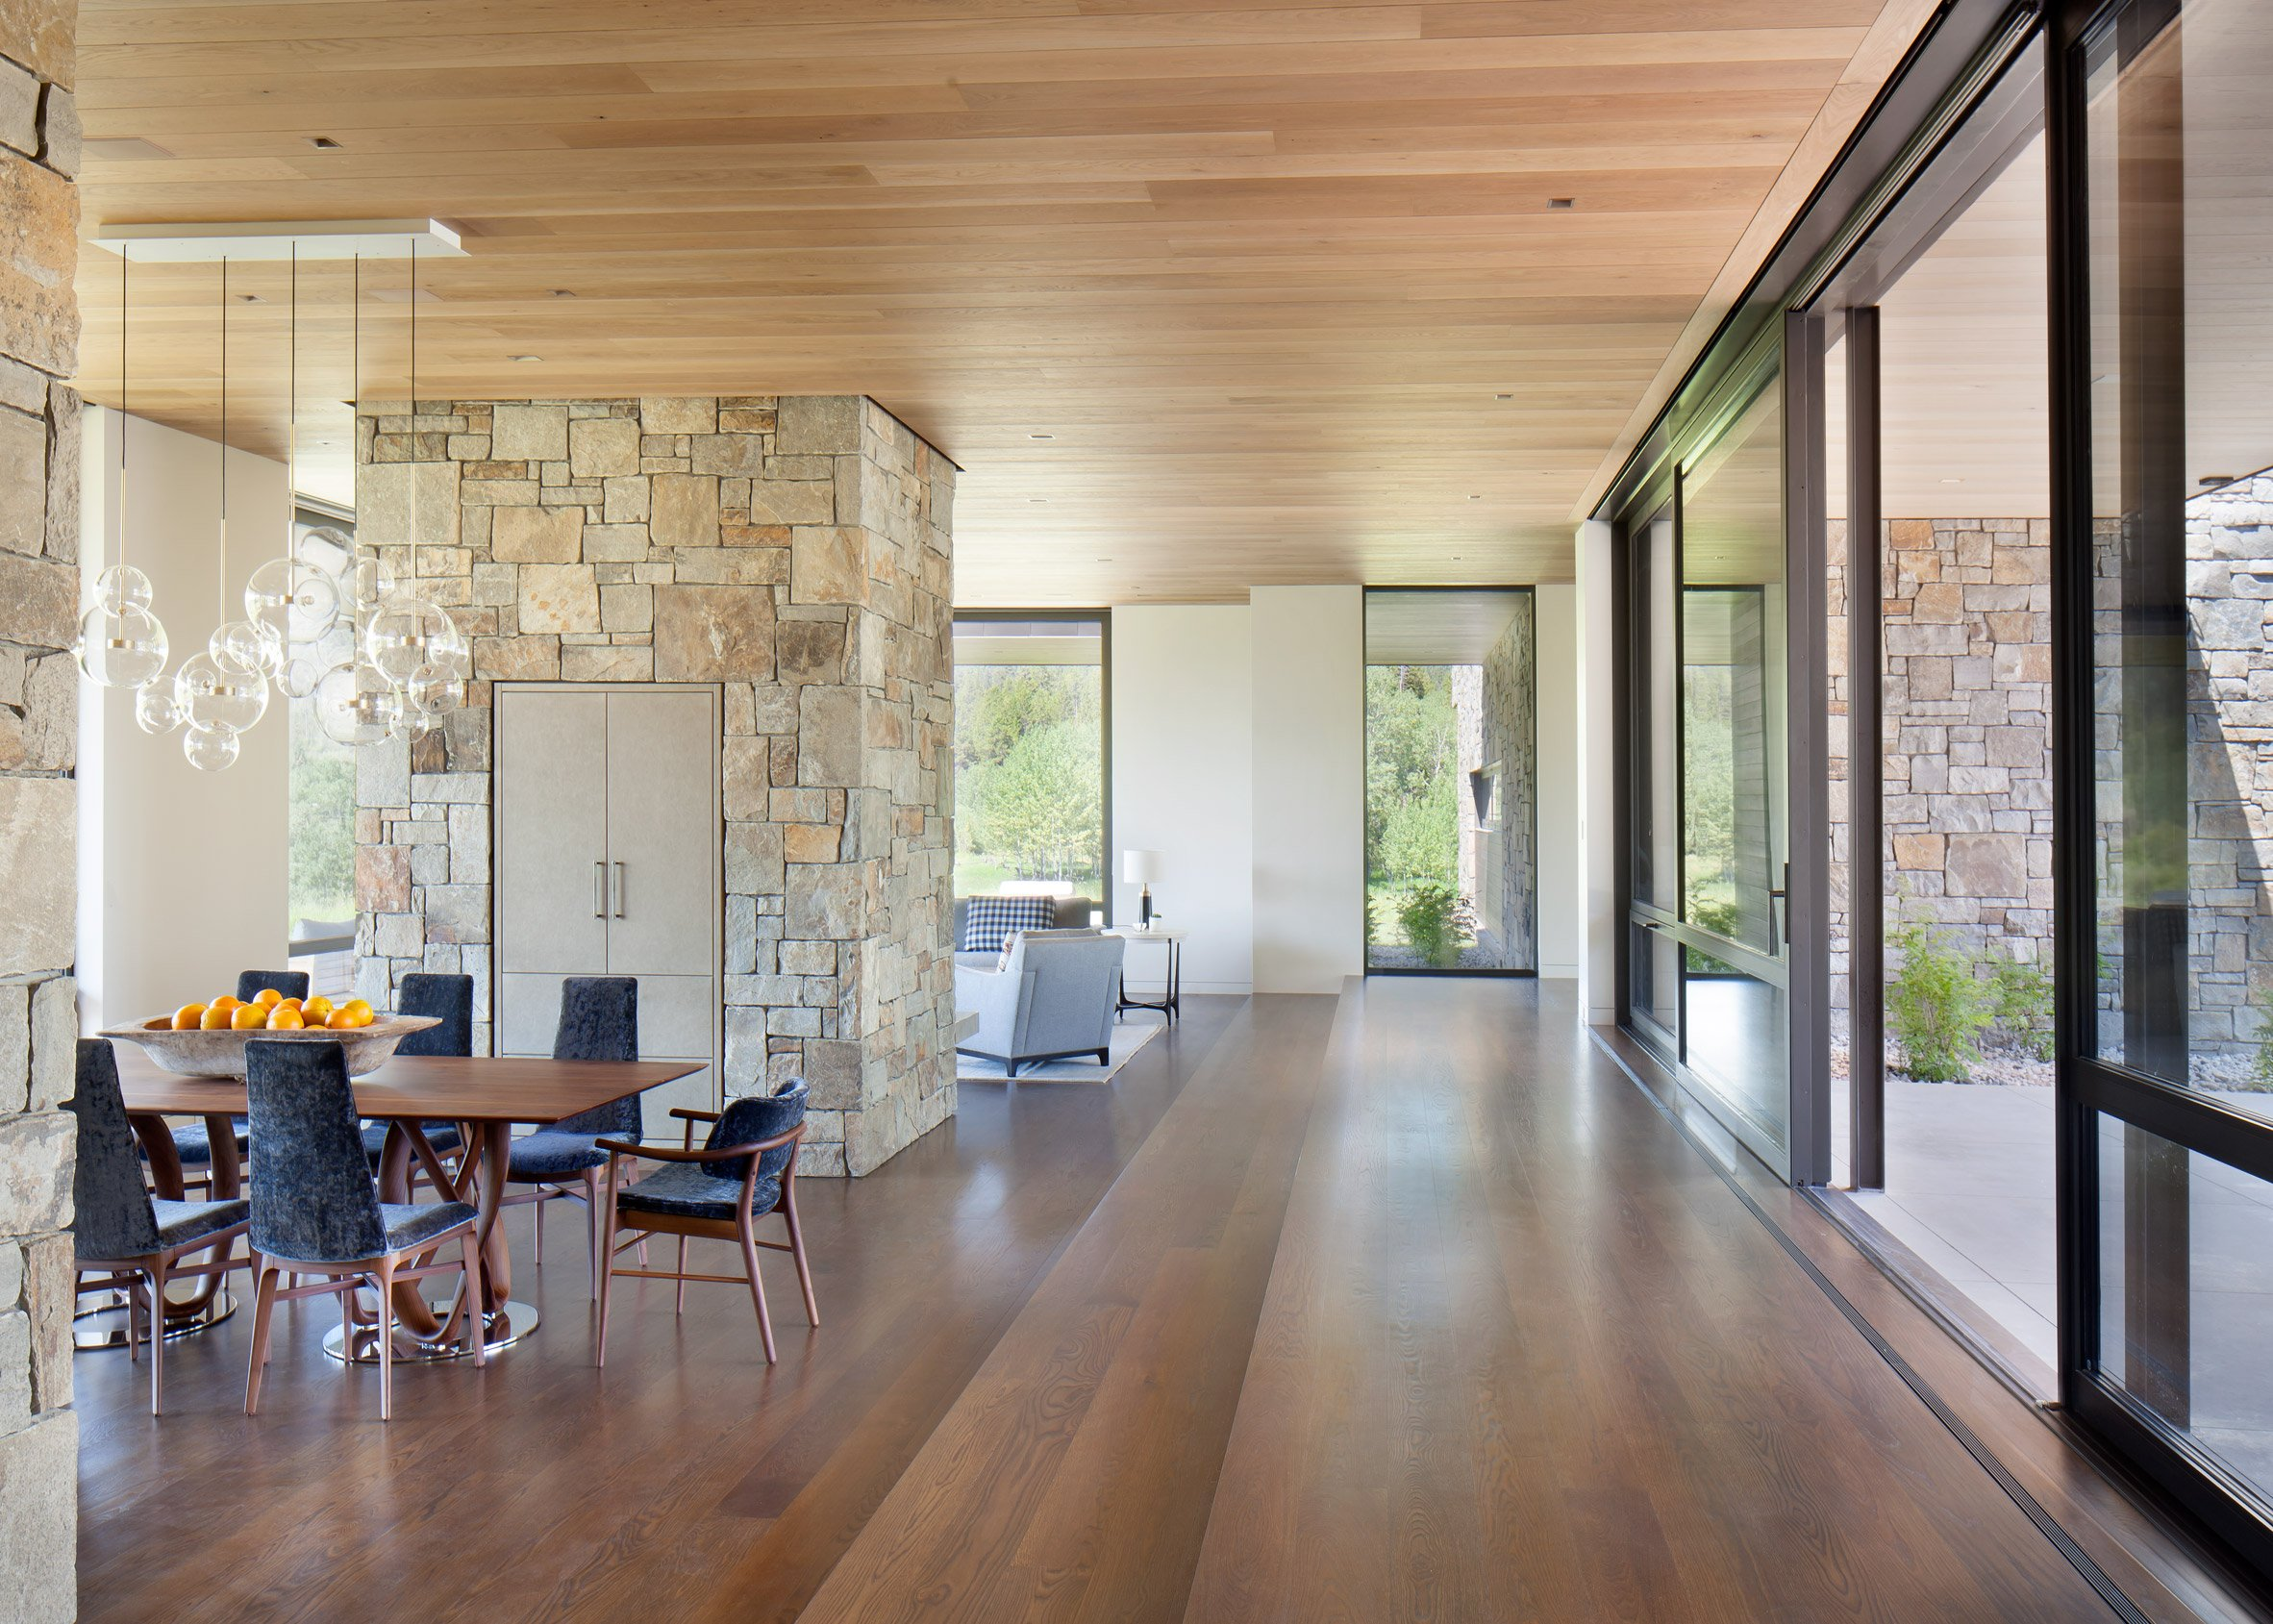 Crescent H by Carney Logan Burke Architects